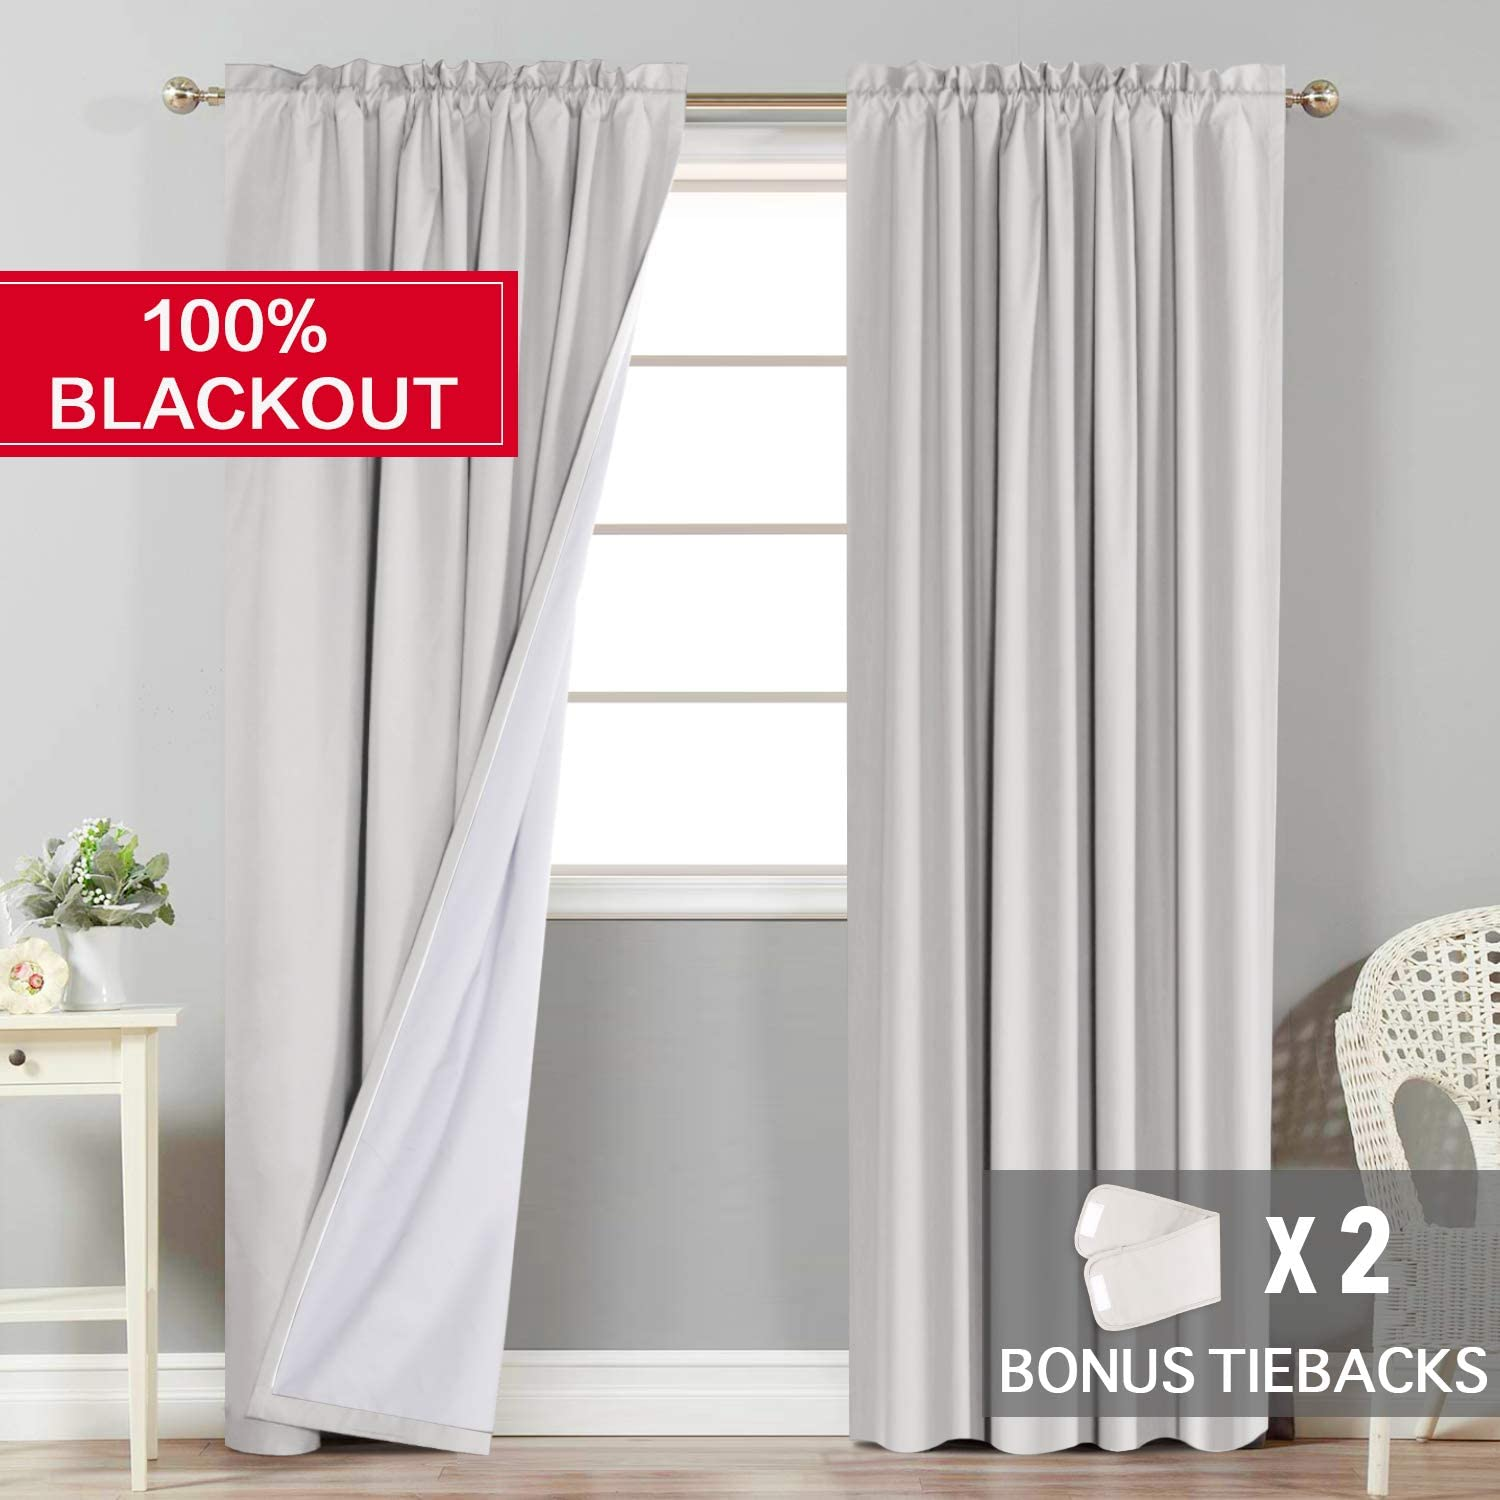 2 Bonus Tie-Backs Rod Pocket Natural Flamingo P 100/% Light Blocking Curtains//Drapes//Draperies Full Blackout Curtains Pair with White Backing for Bedroom 63 inch Long